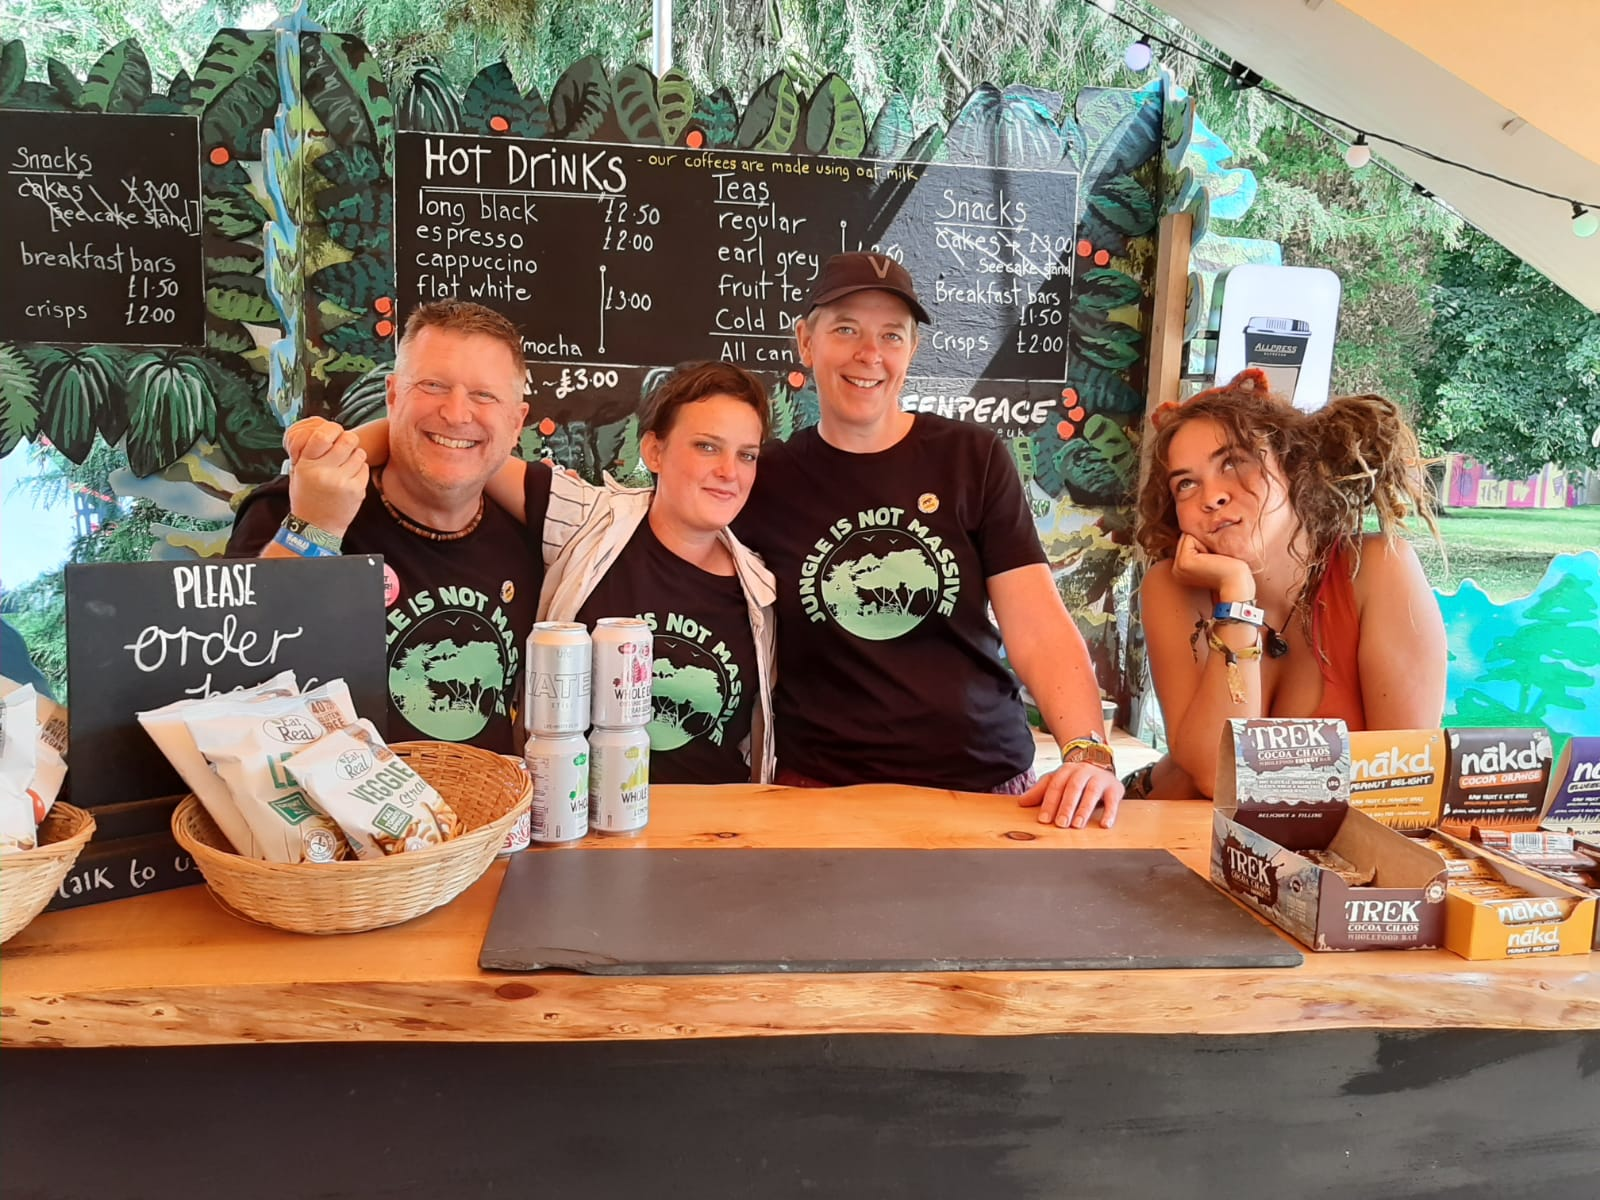 Volunteers in tshirts saying 'Jungle is not massive' operate a refreshments stall with a blackboard menu in the background